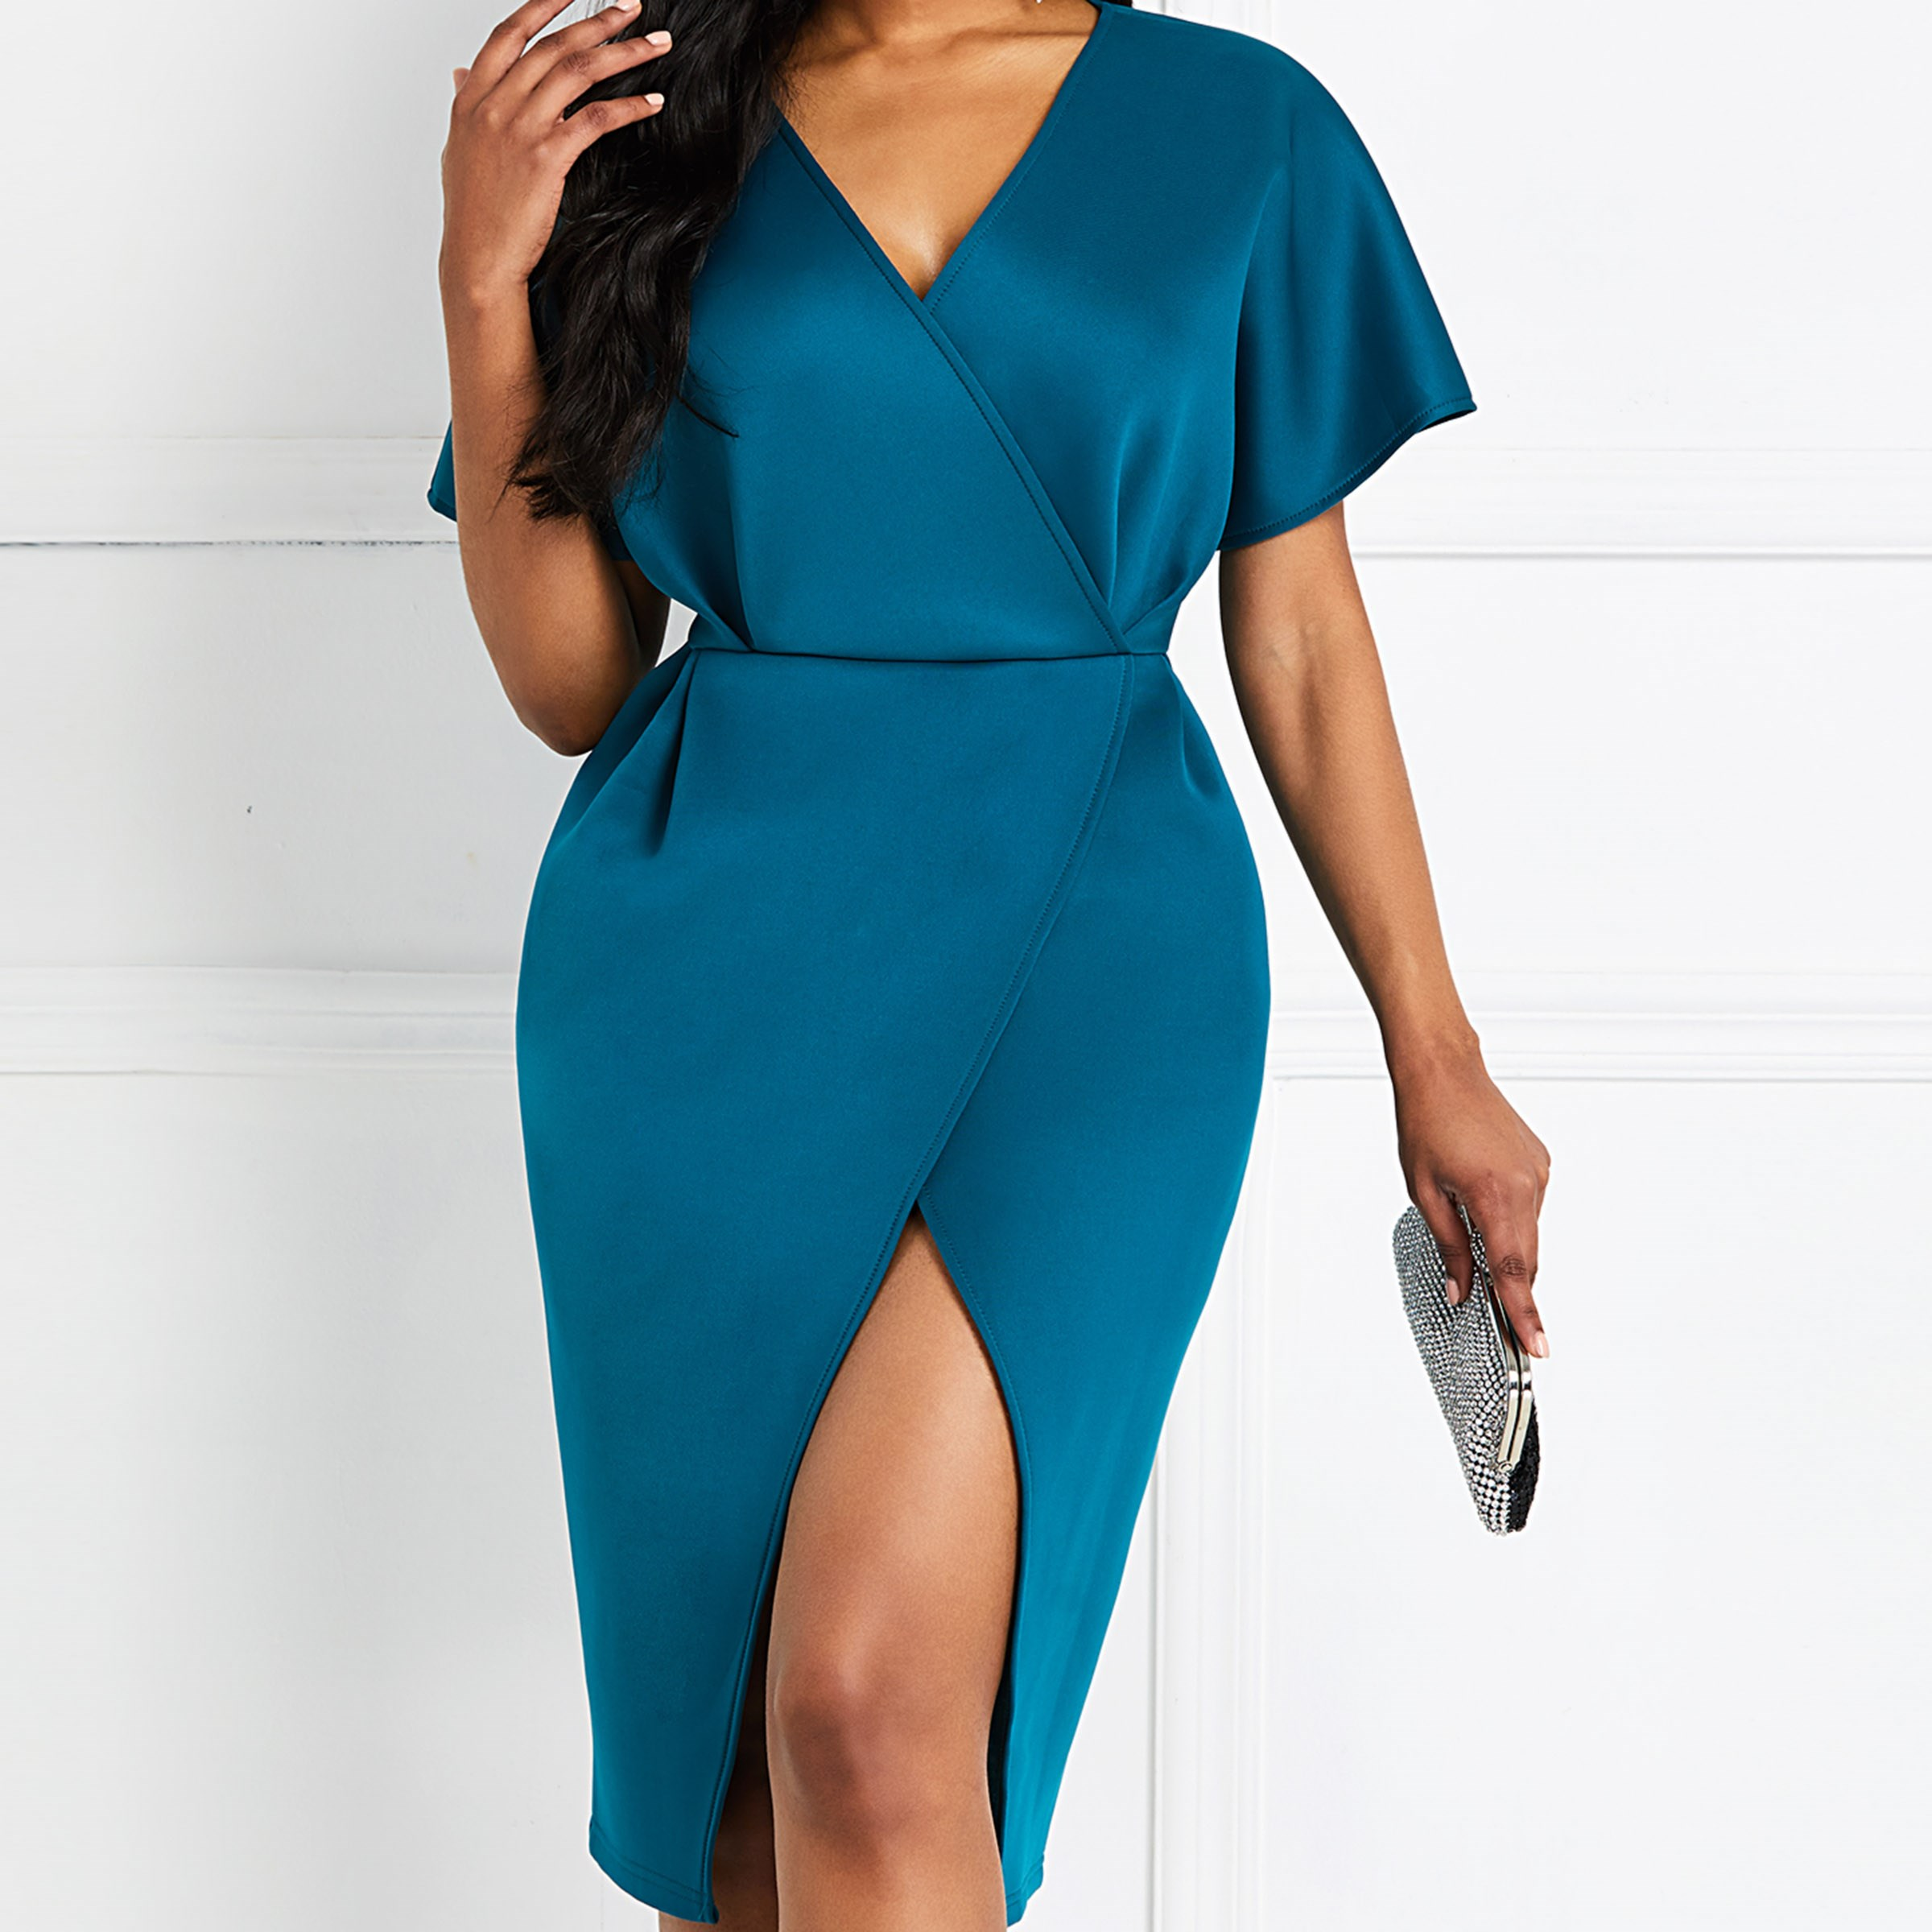 2019 Women V Neck Wrap Casual Dress Party Midi Dress Solid Elegant Dress in Dresses from Women 39 s Clothing